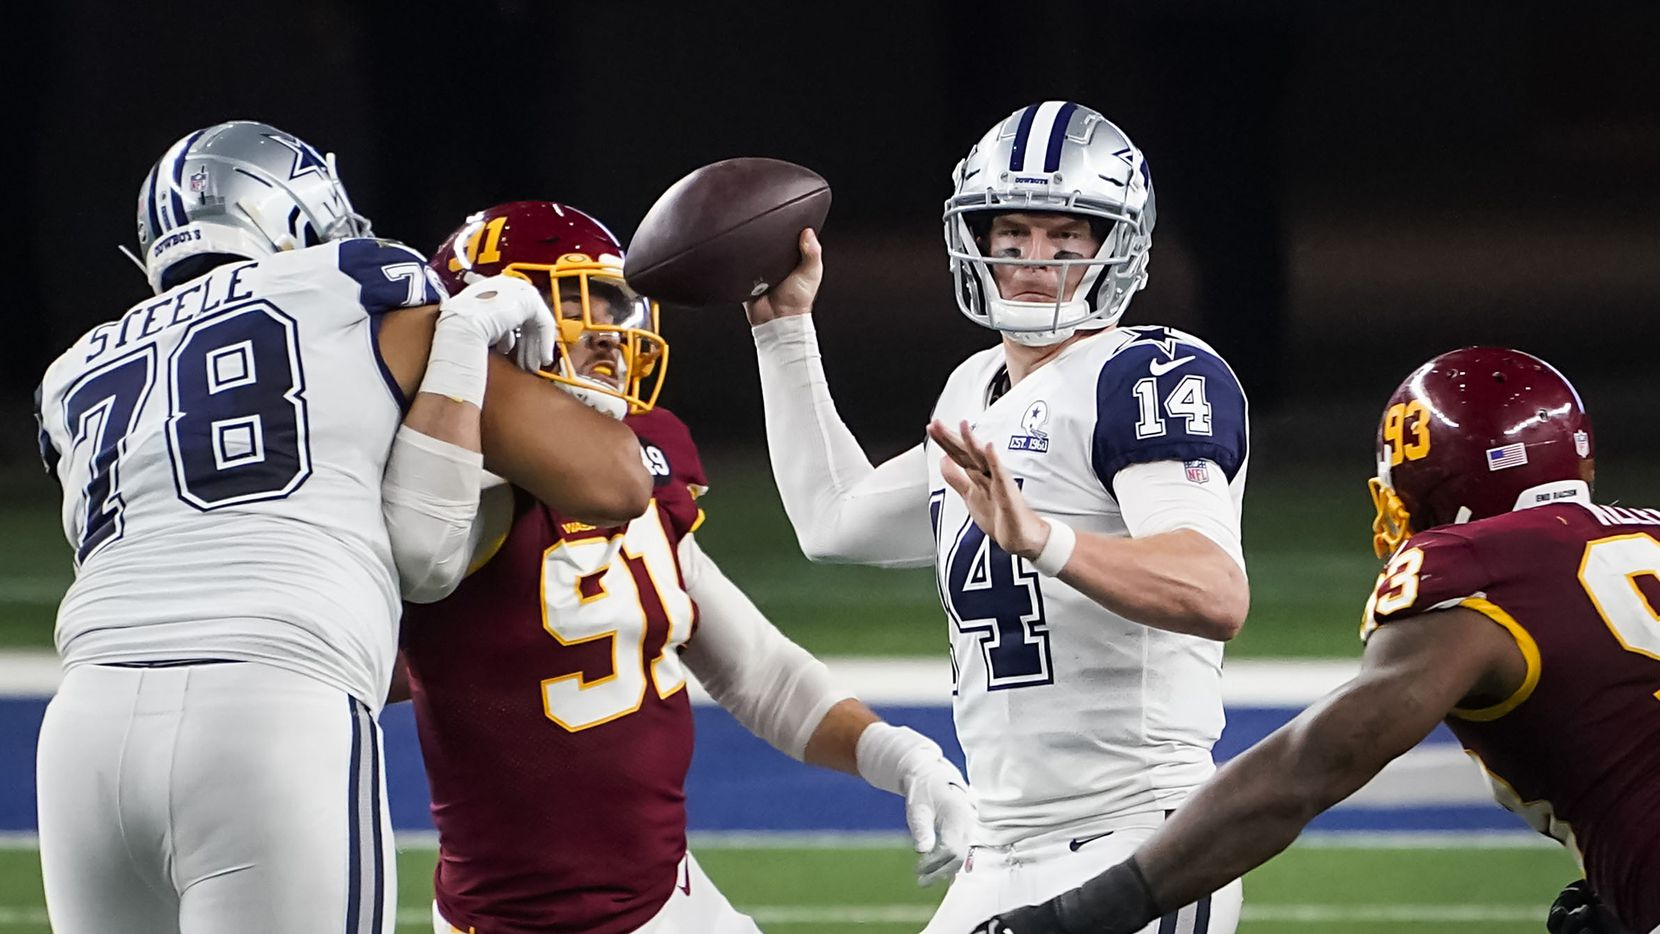 Dallas Cowboys quarterback Andy Dalton (14) looks to pass as offensive tackle Terence Steele (78) works against Washington Football Team defensive end Ryan Kerrigan (91) during the fourth quarter of an NFL football game at AT&T Stadium on Thursday, Nov. 26, 2020, in Arlington.